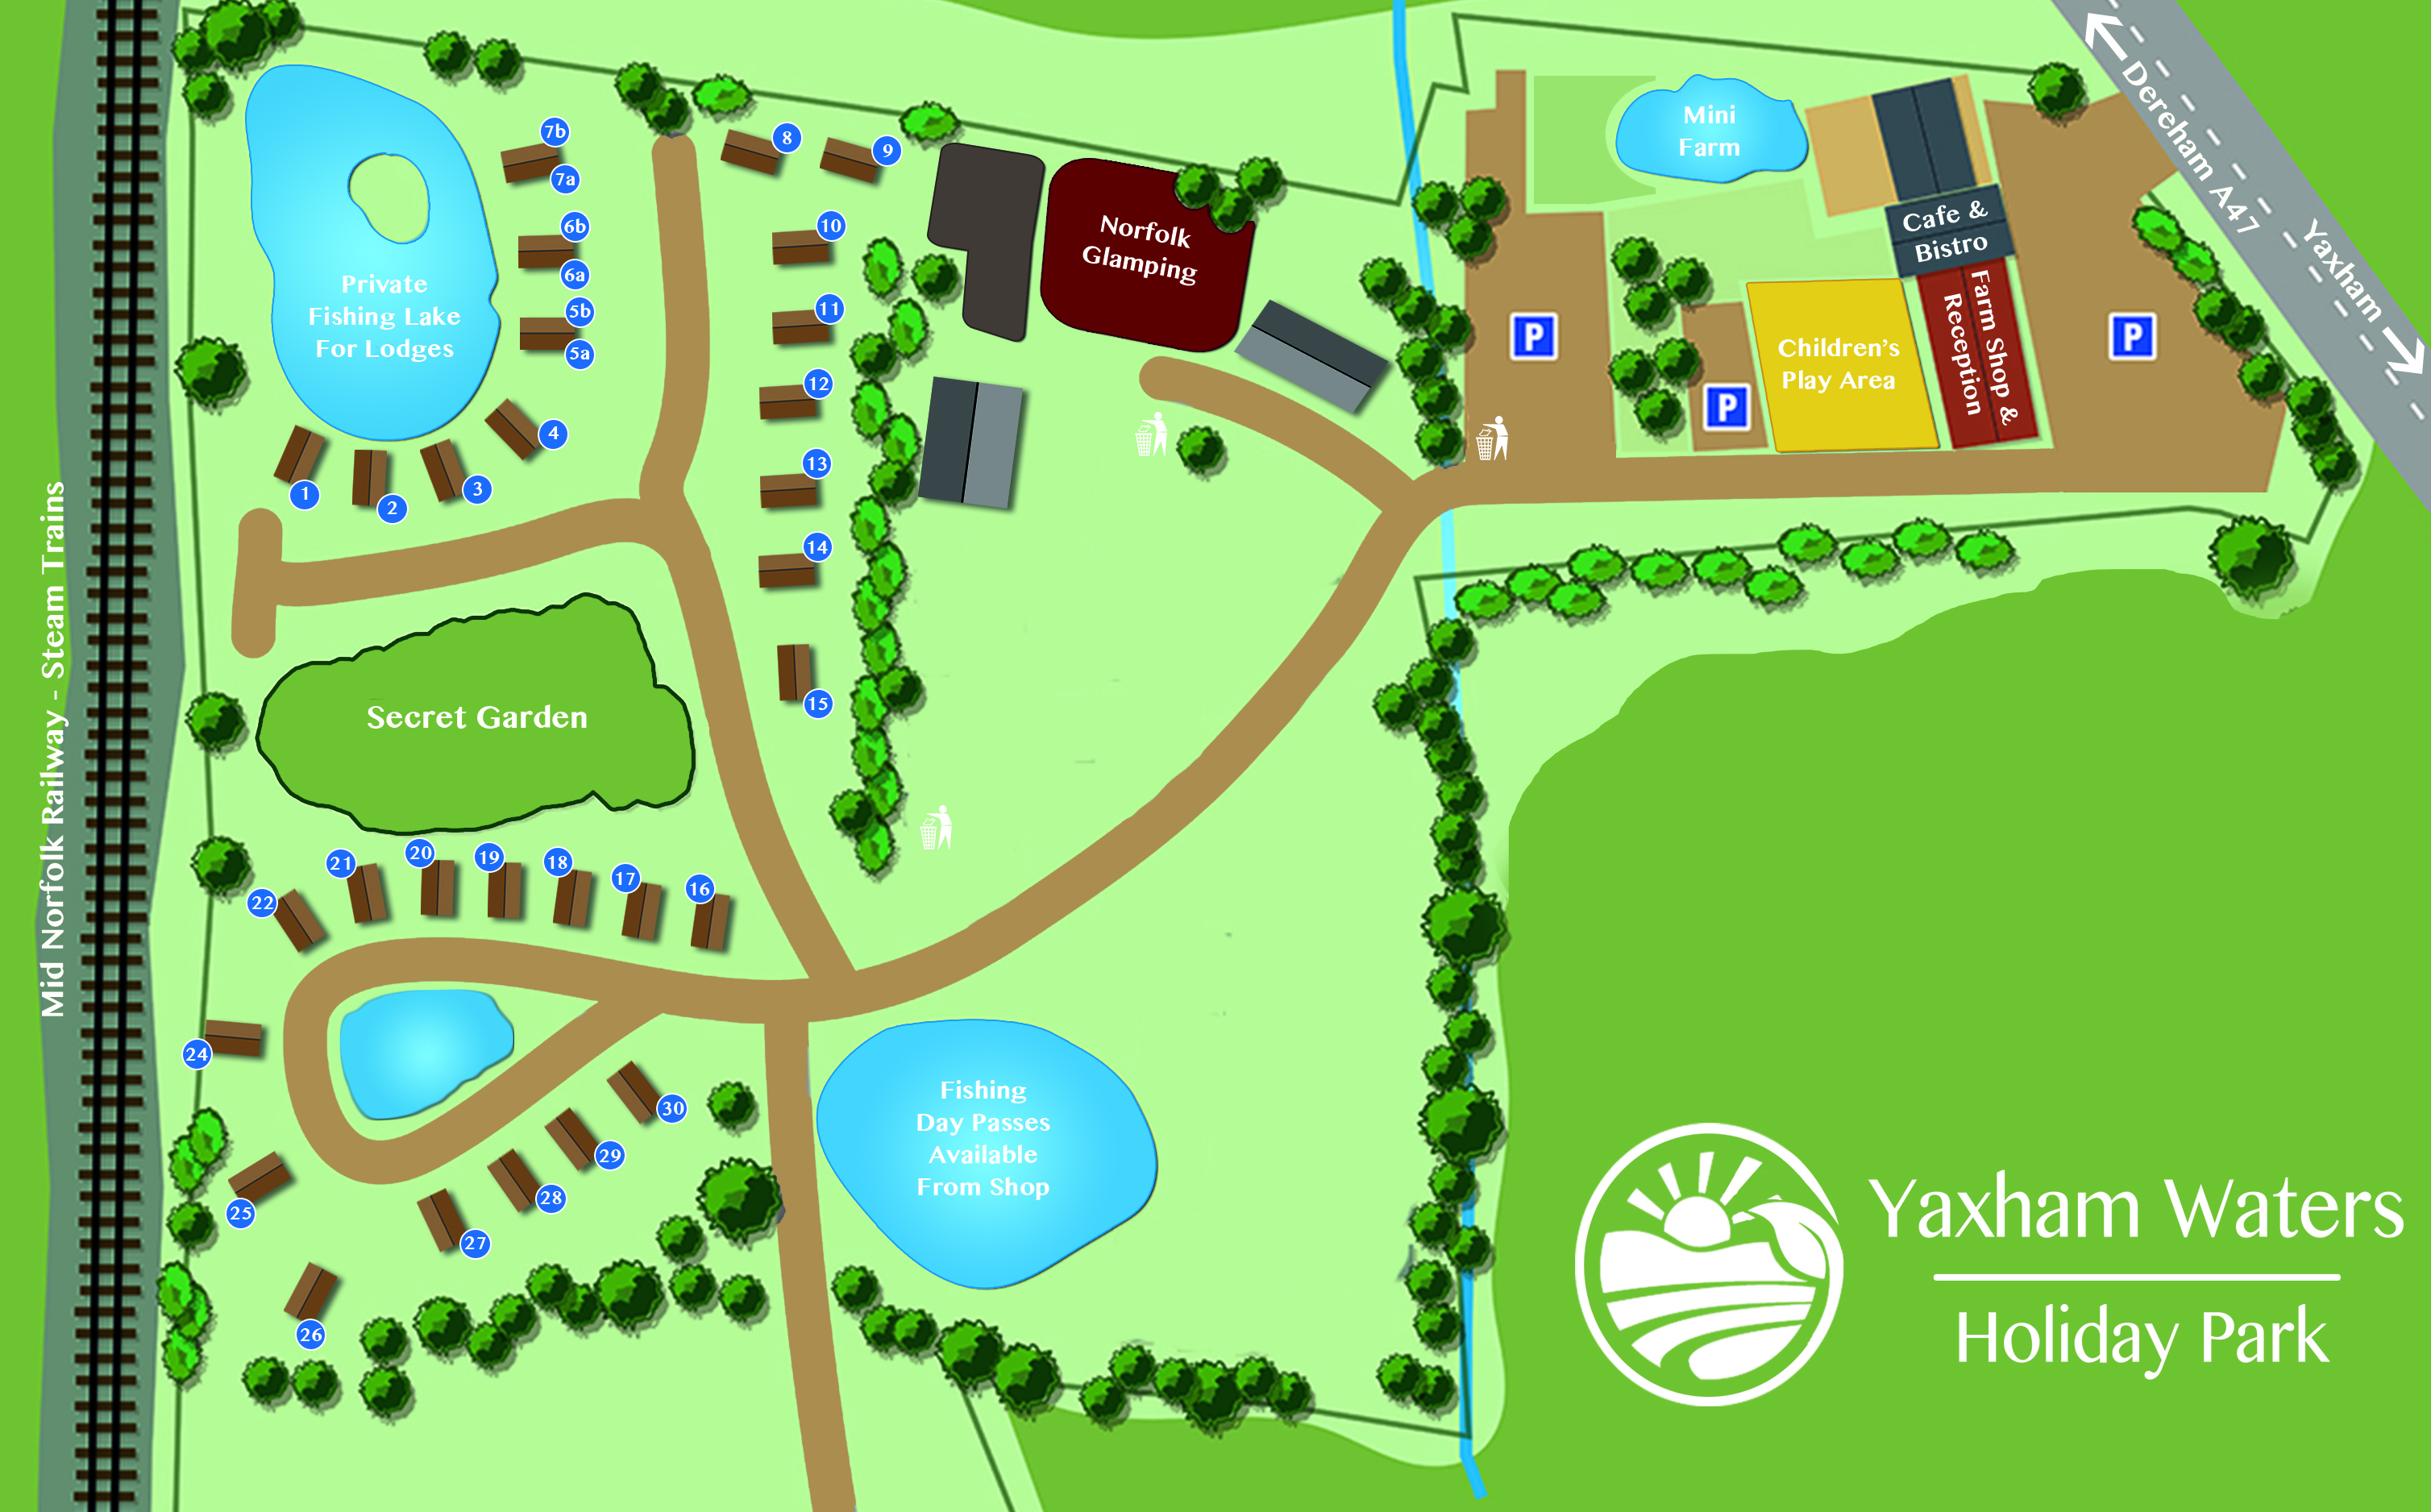 Map of Yaxham Waters Holiday Park